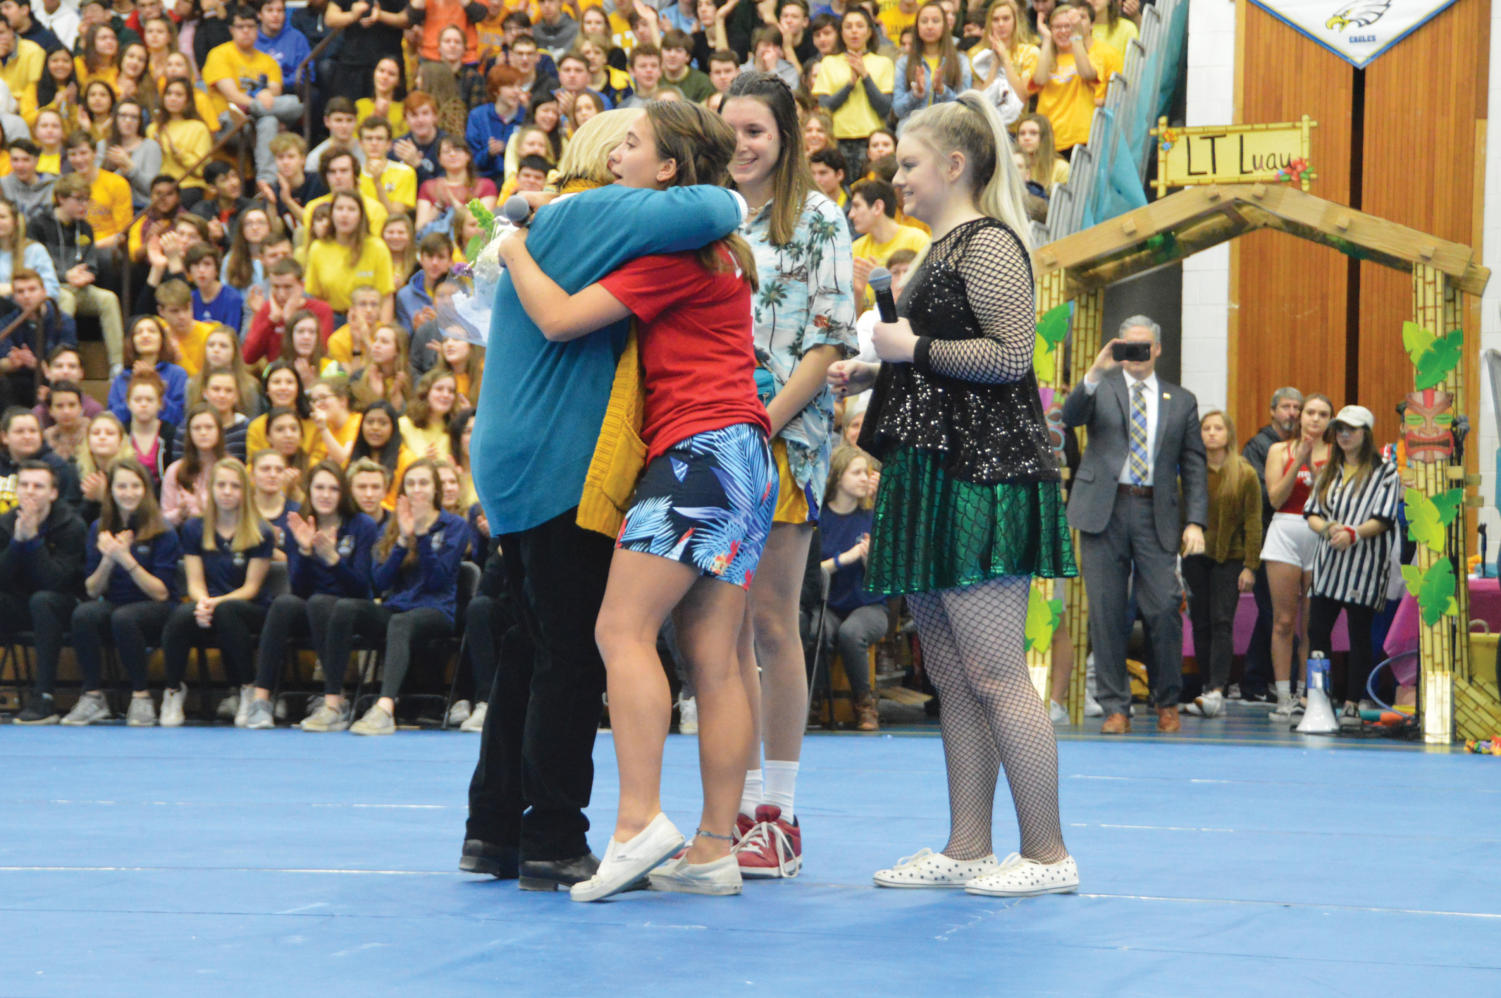 Kris+Costopolous+embraces+a+student+during+the+assembly.+Because+of+her+anticipated+retirement%2C+the+assembly+honored+here+for+starting+the+All-school+18+years+ago.